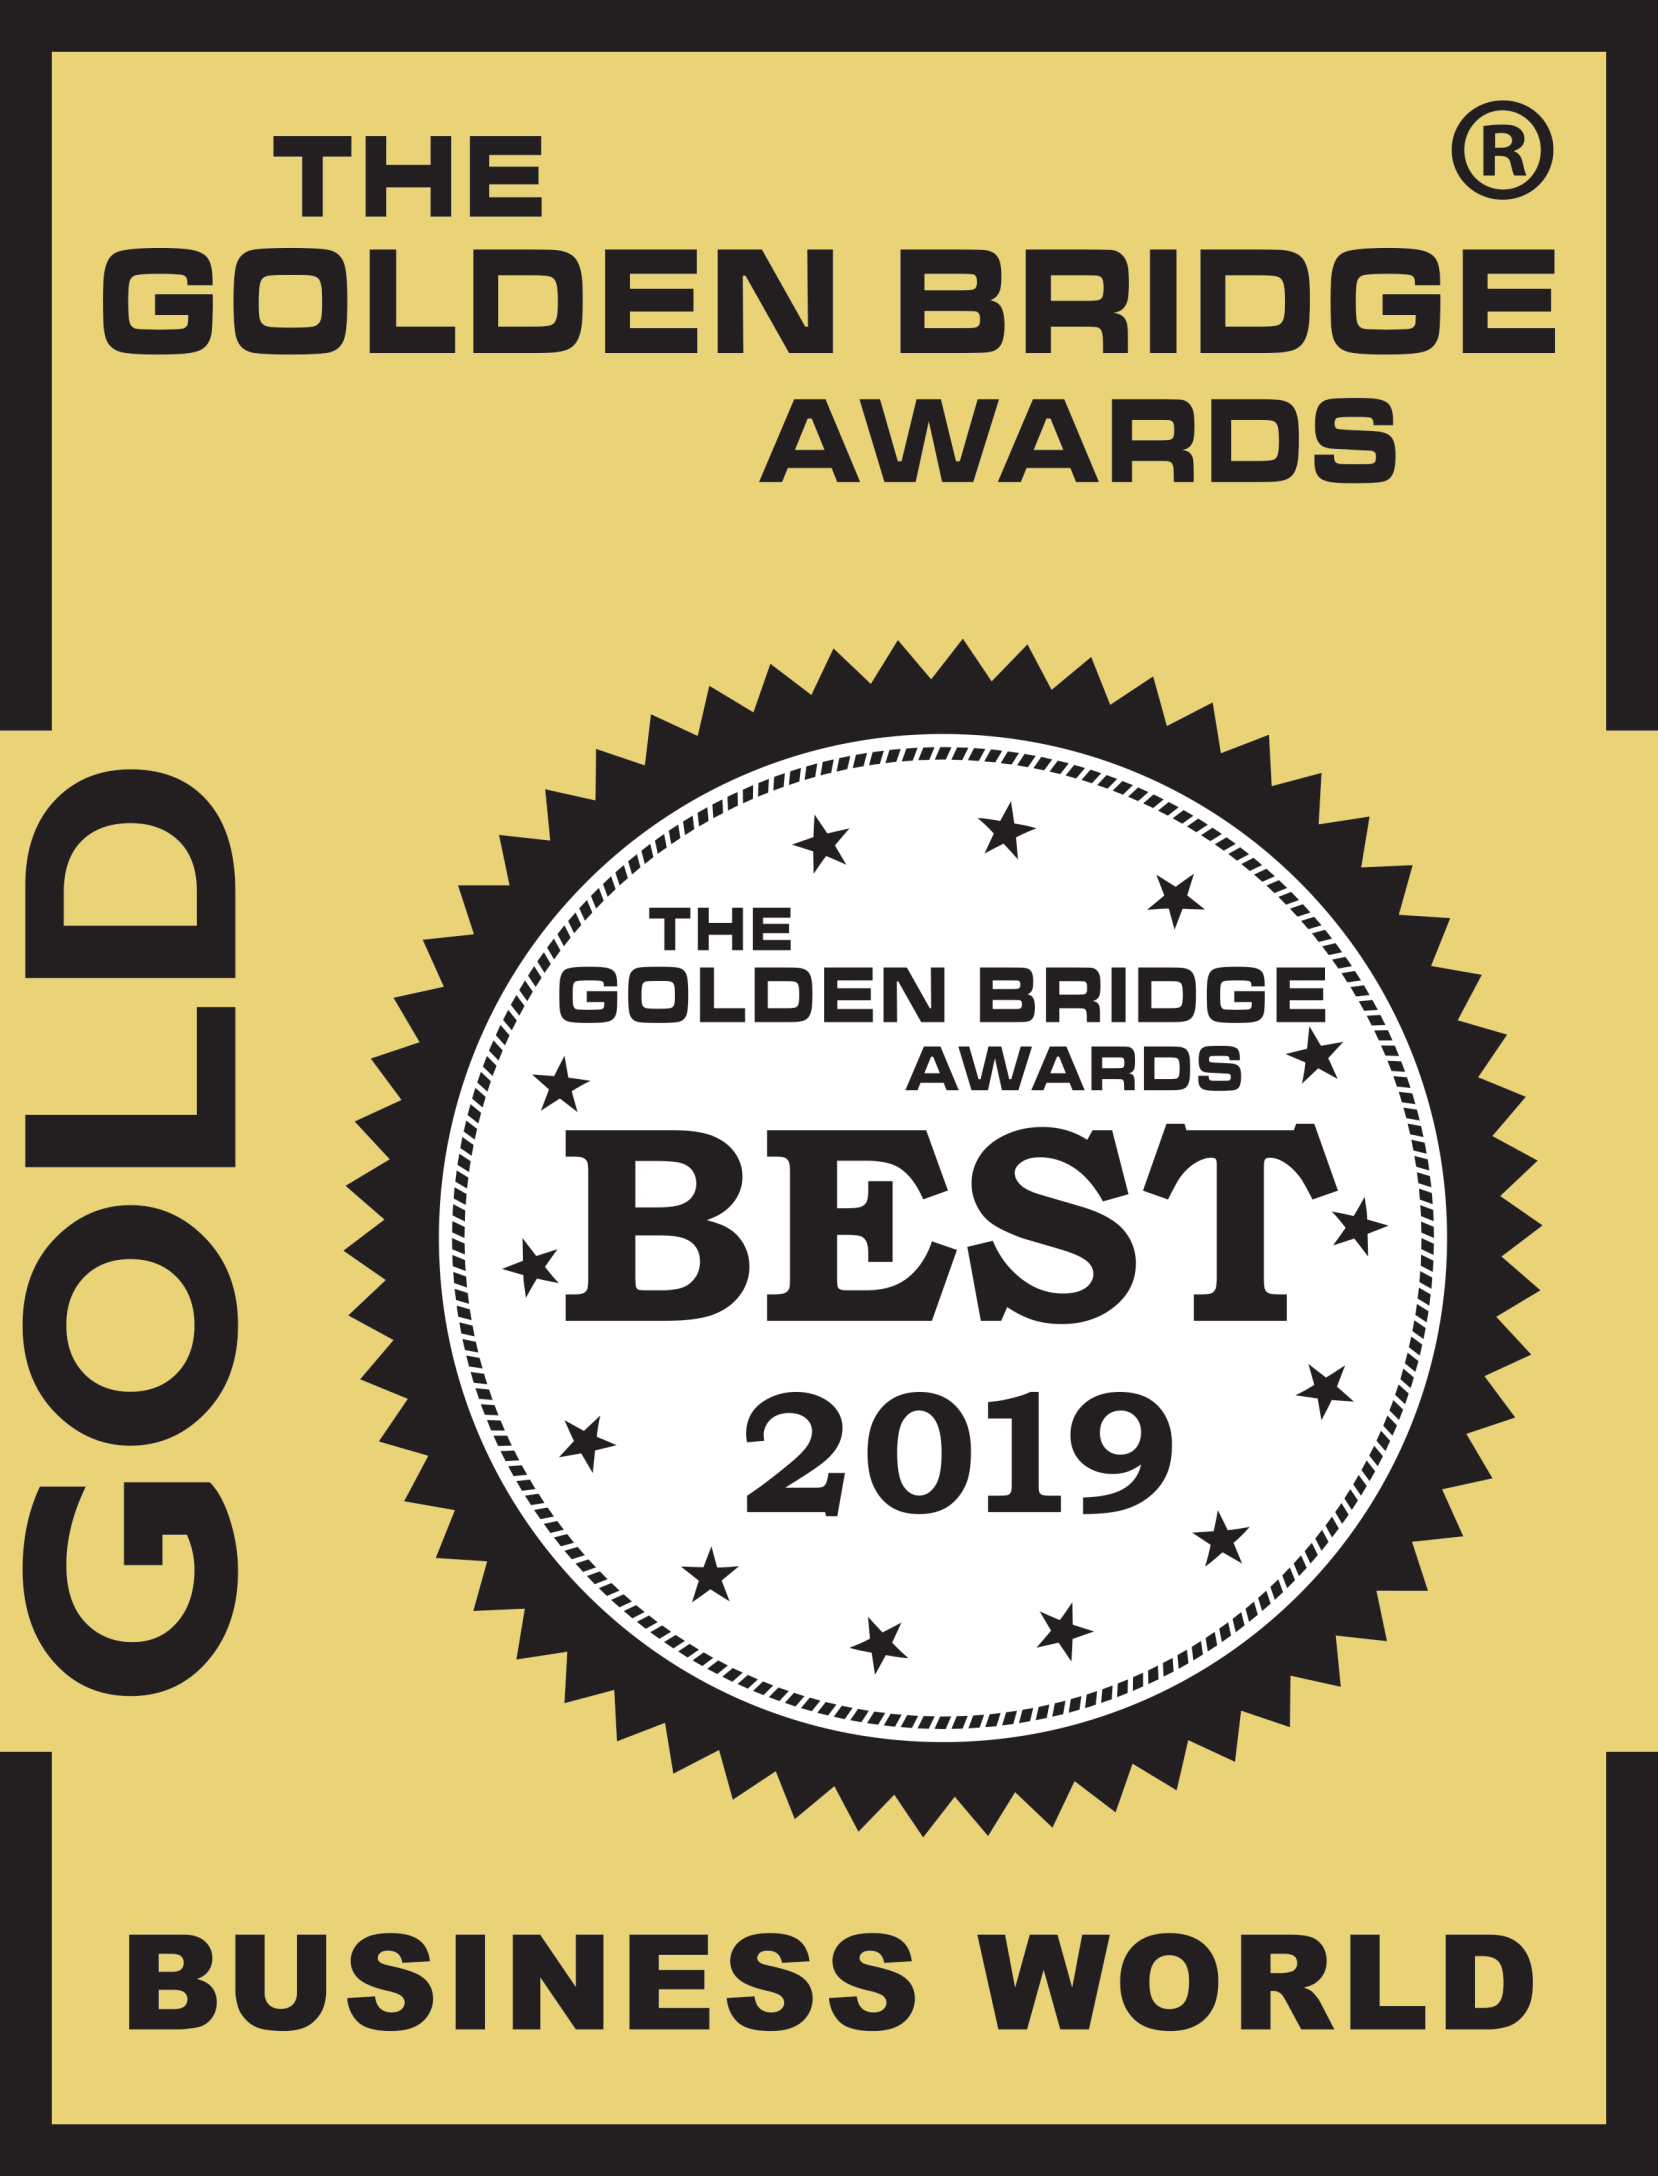 golden bridge awards gold